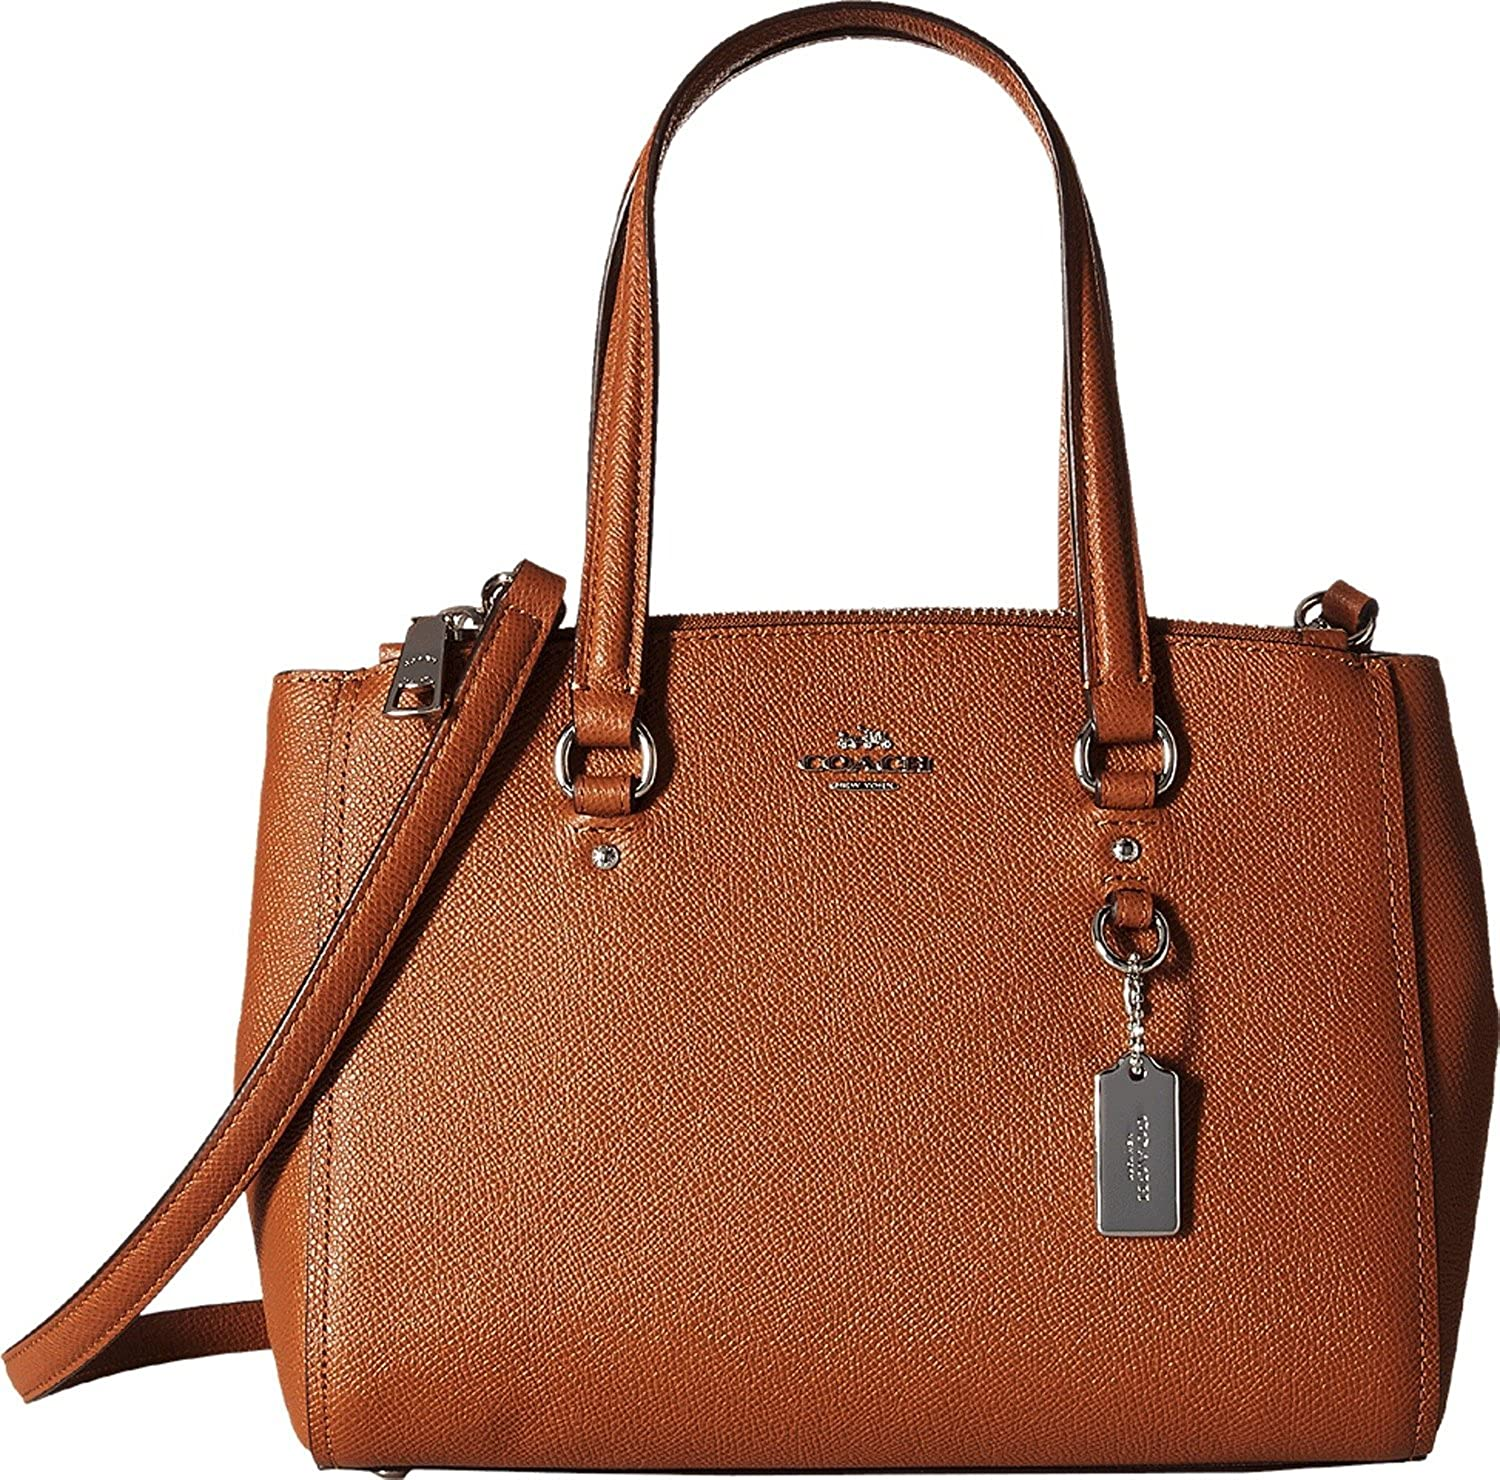 Coach Stanton Carryall 26 In Crossgrain Leather  Amazon.ca  Shoes   Handbags be38f1ca08c48